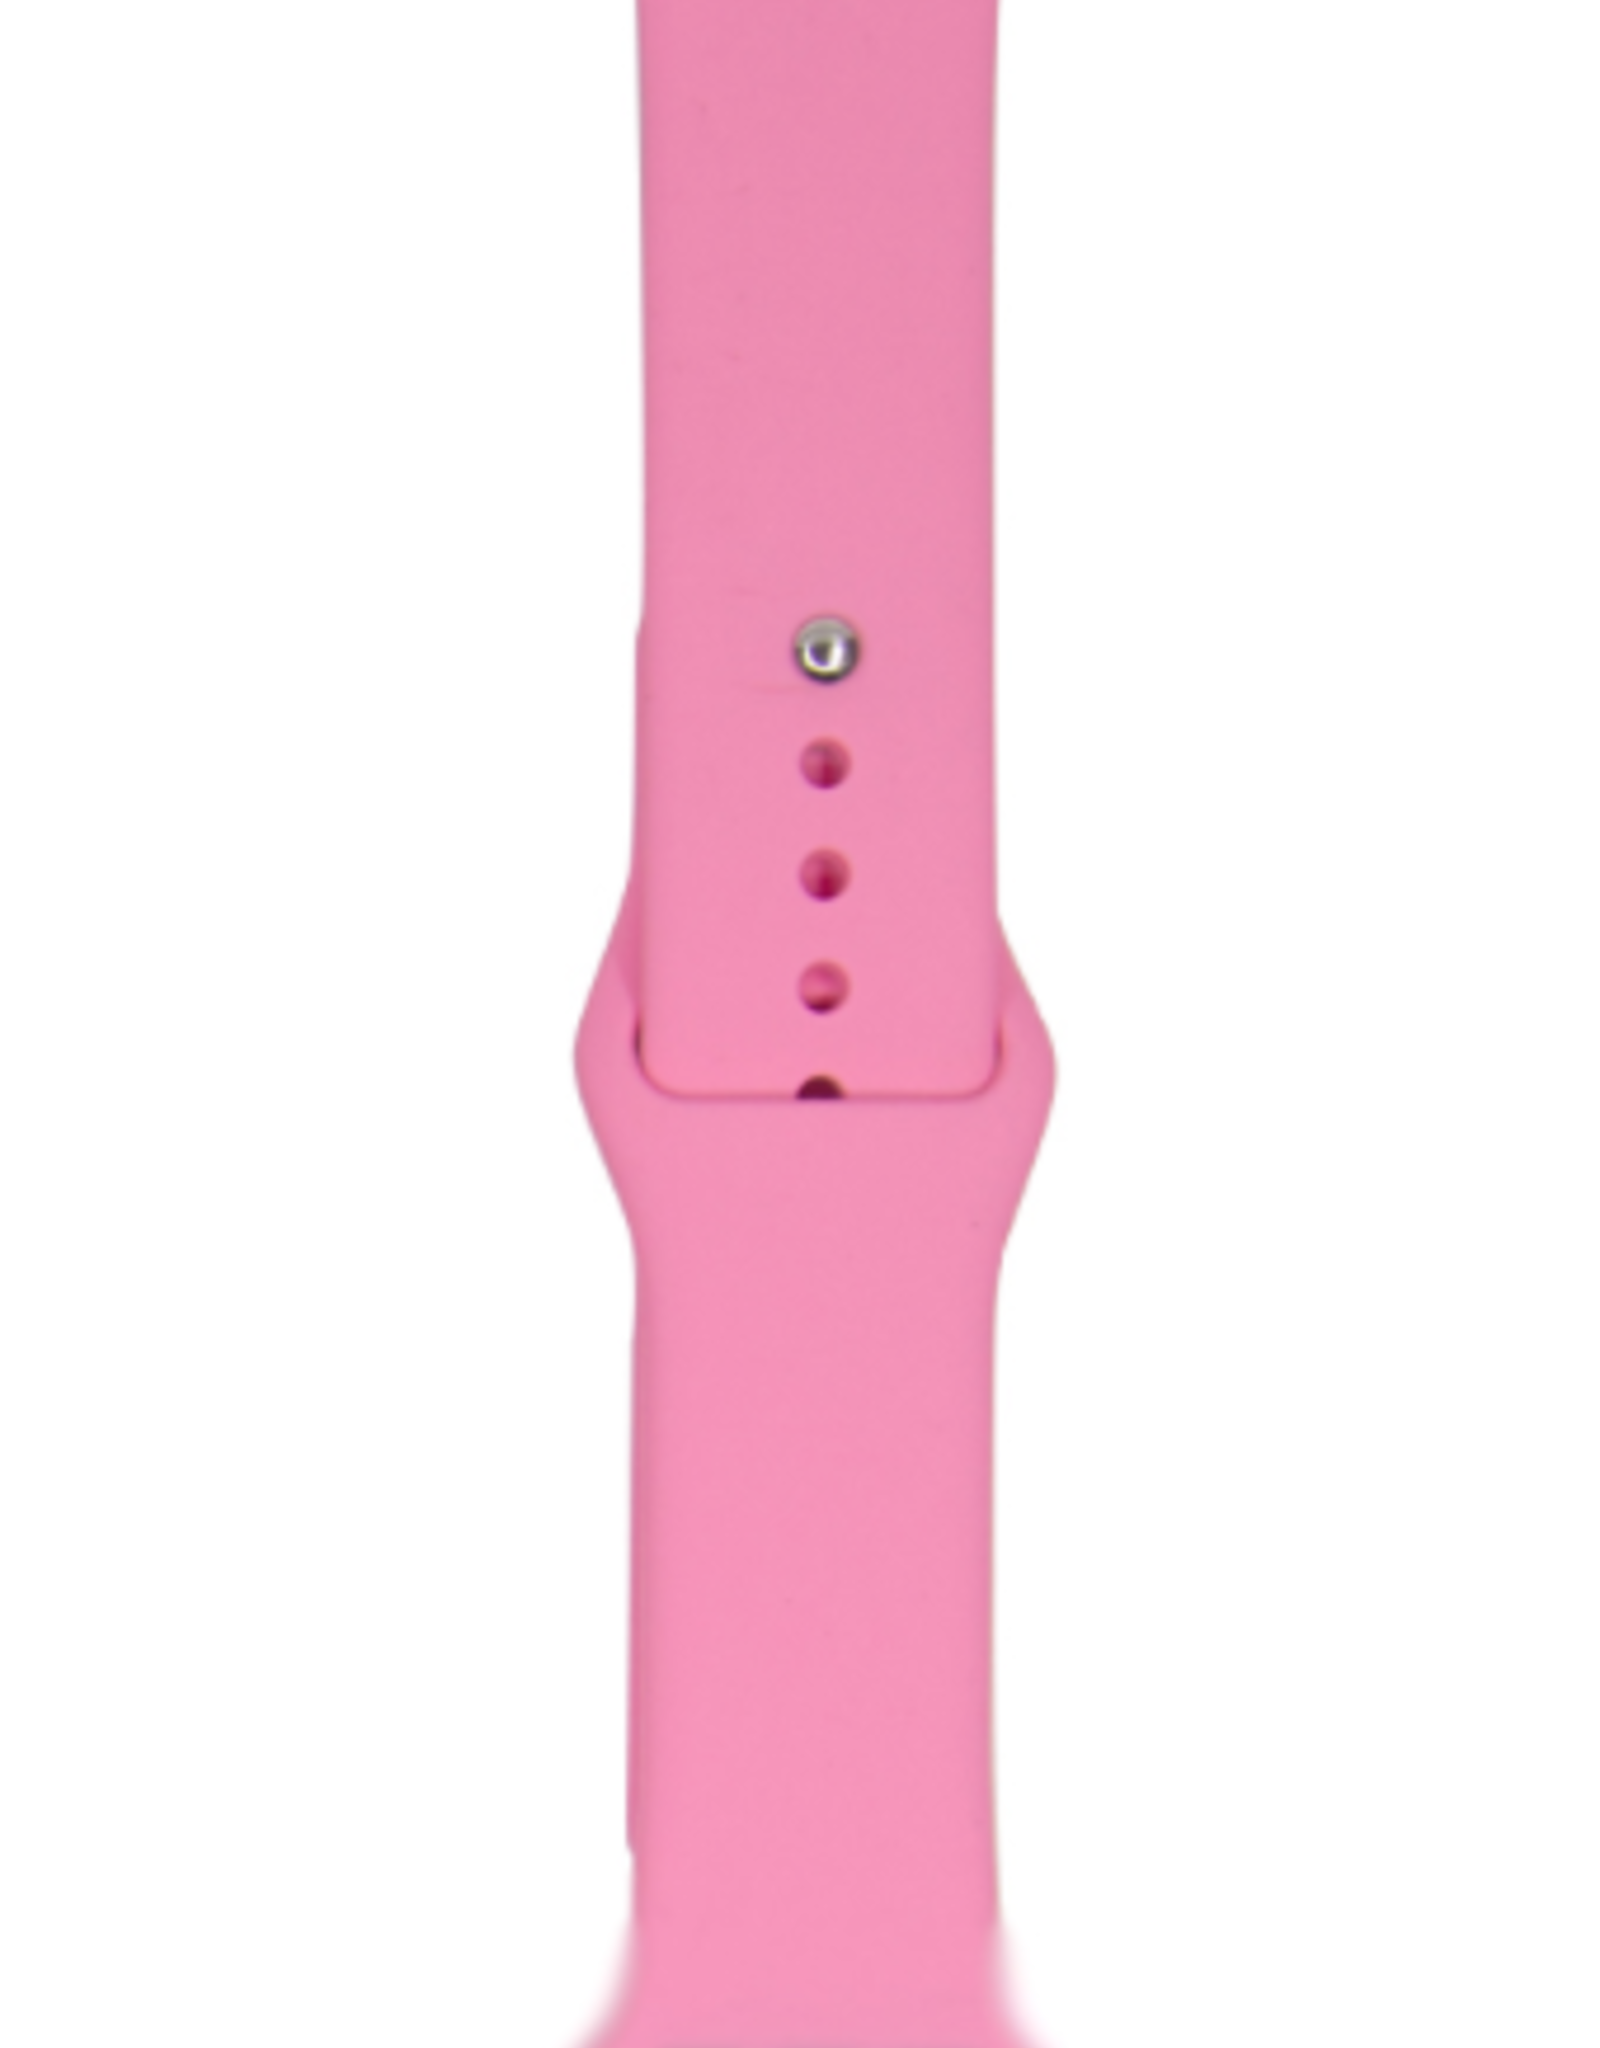 Classic silicone replacement band strap for Apple Watch band series 6 5 4 3 2 1 Band Color:# 6 light pink,Band Width:42/44mm S/M